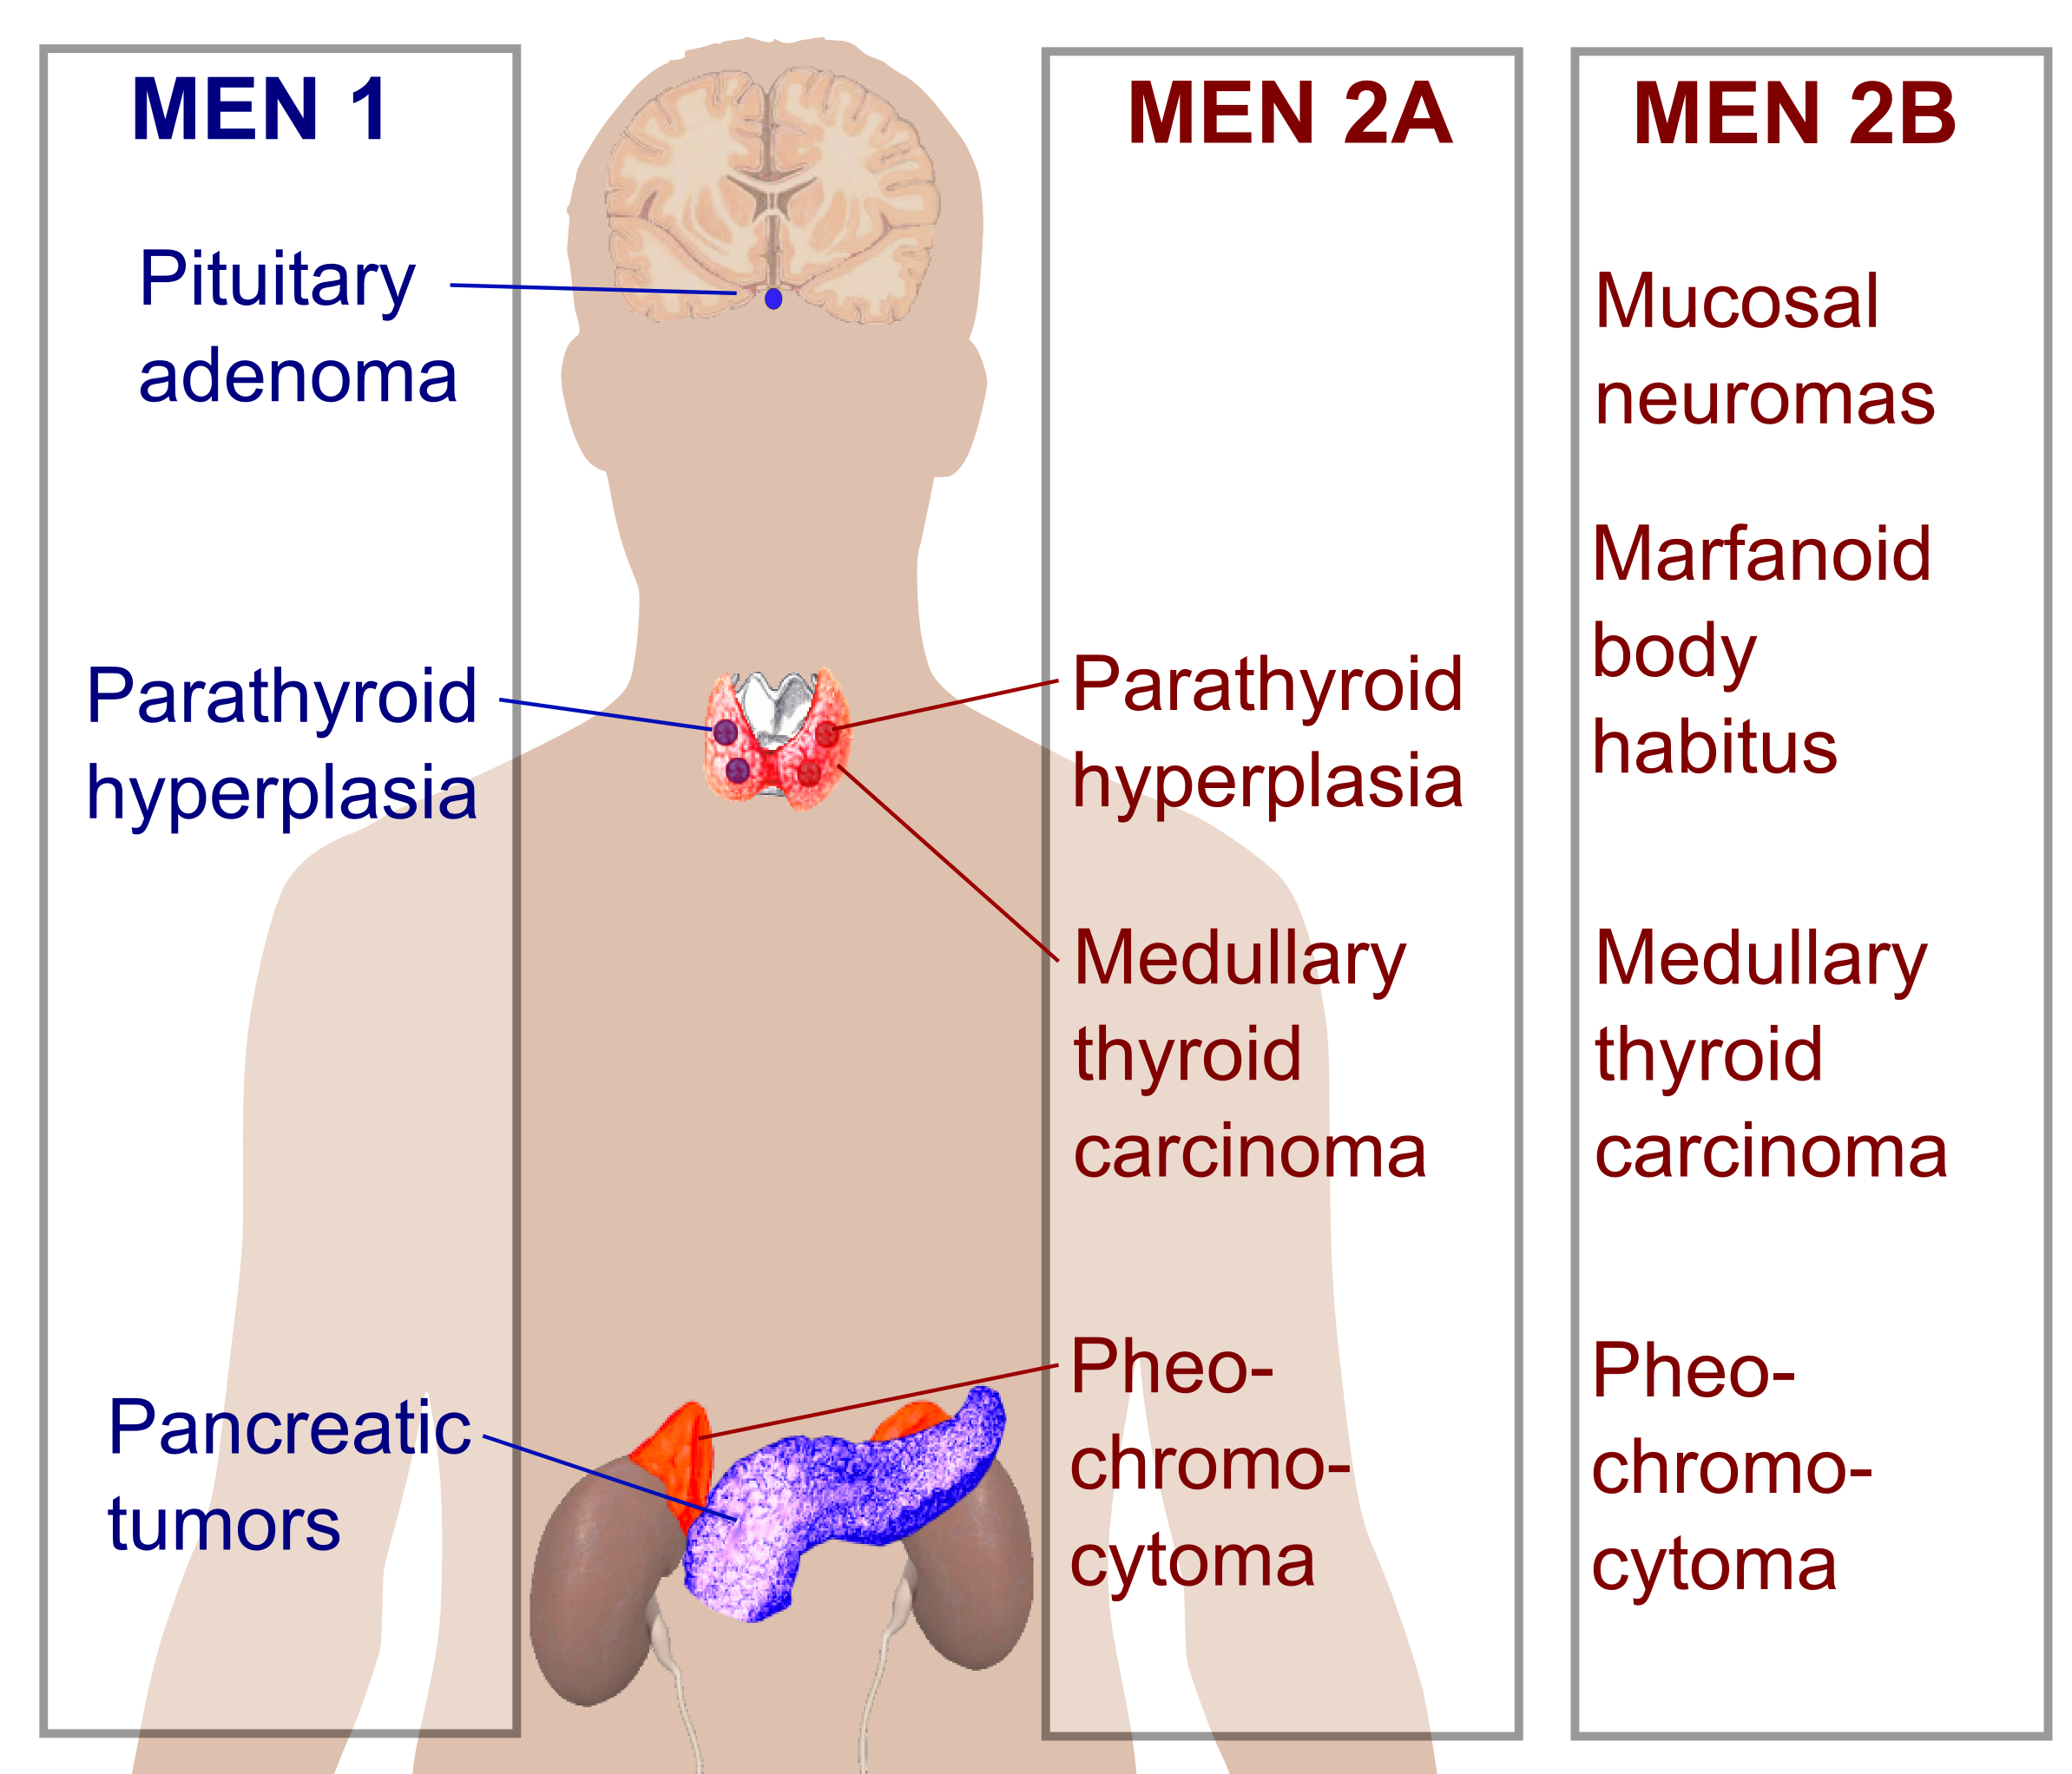 Overview of different MEN conditions (source)